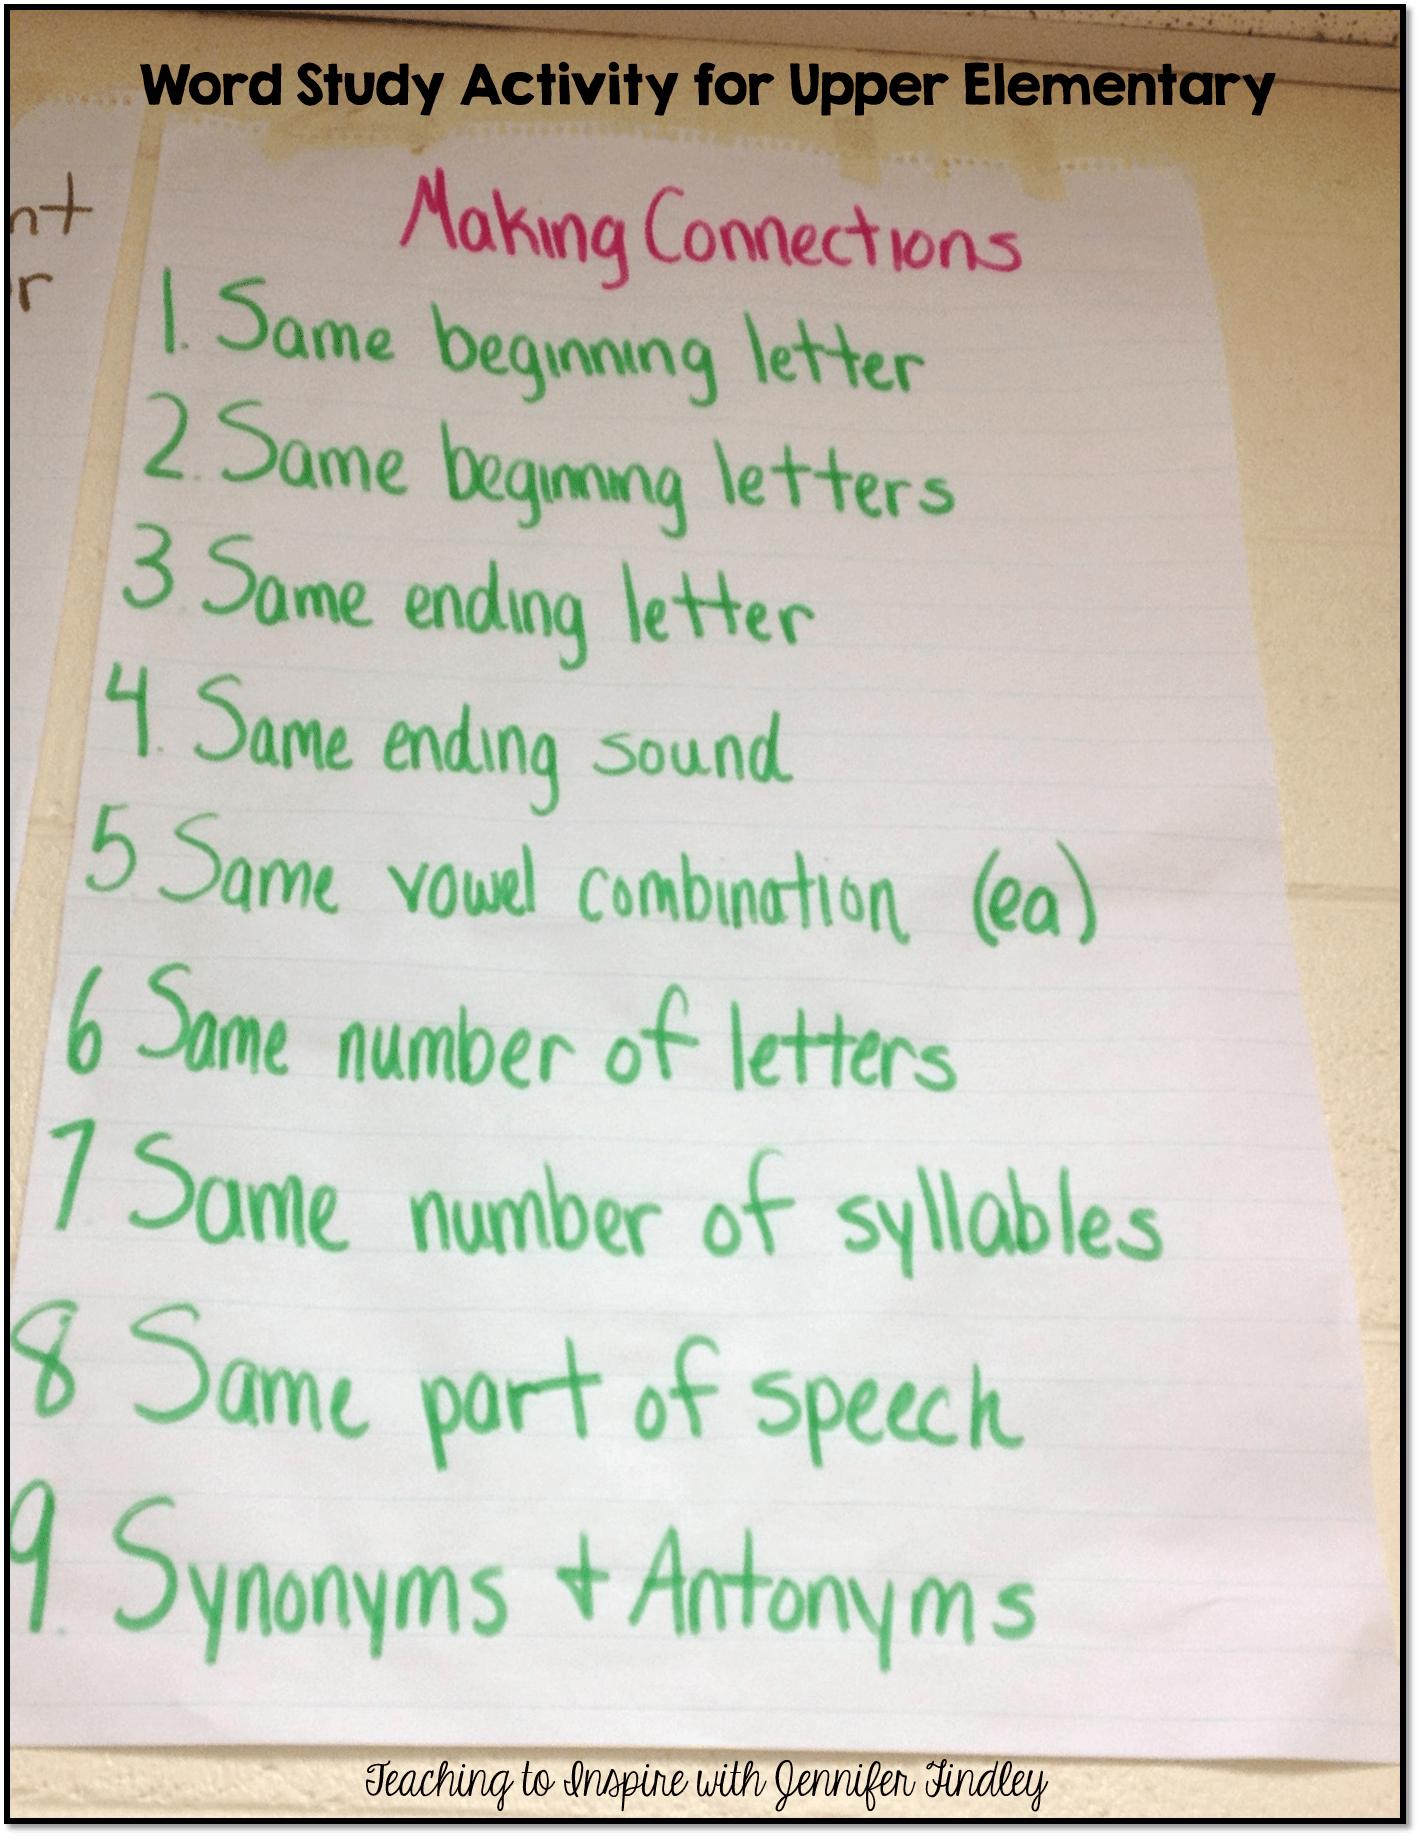 Word Study Activity For Upper Elementary